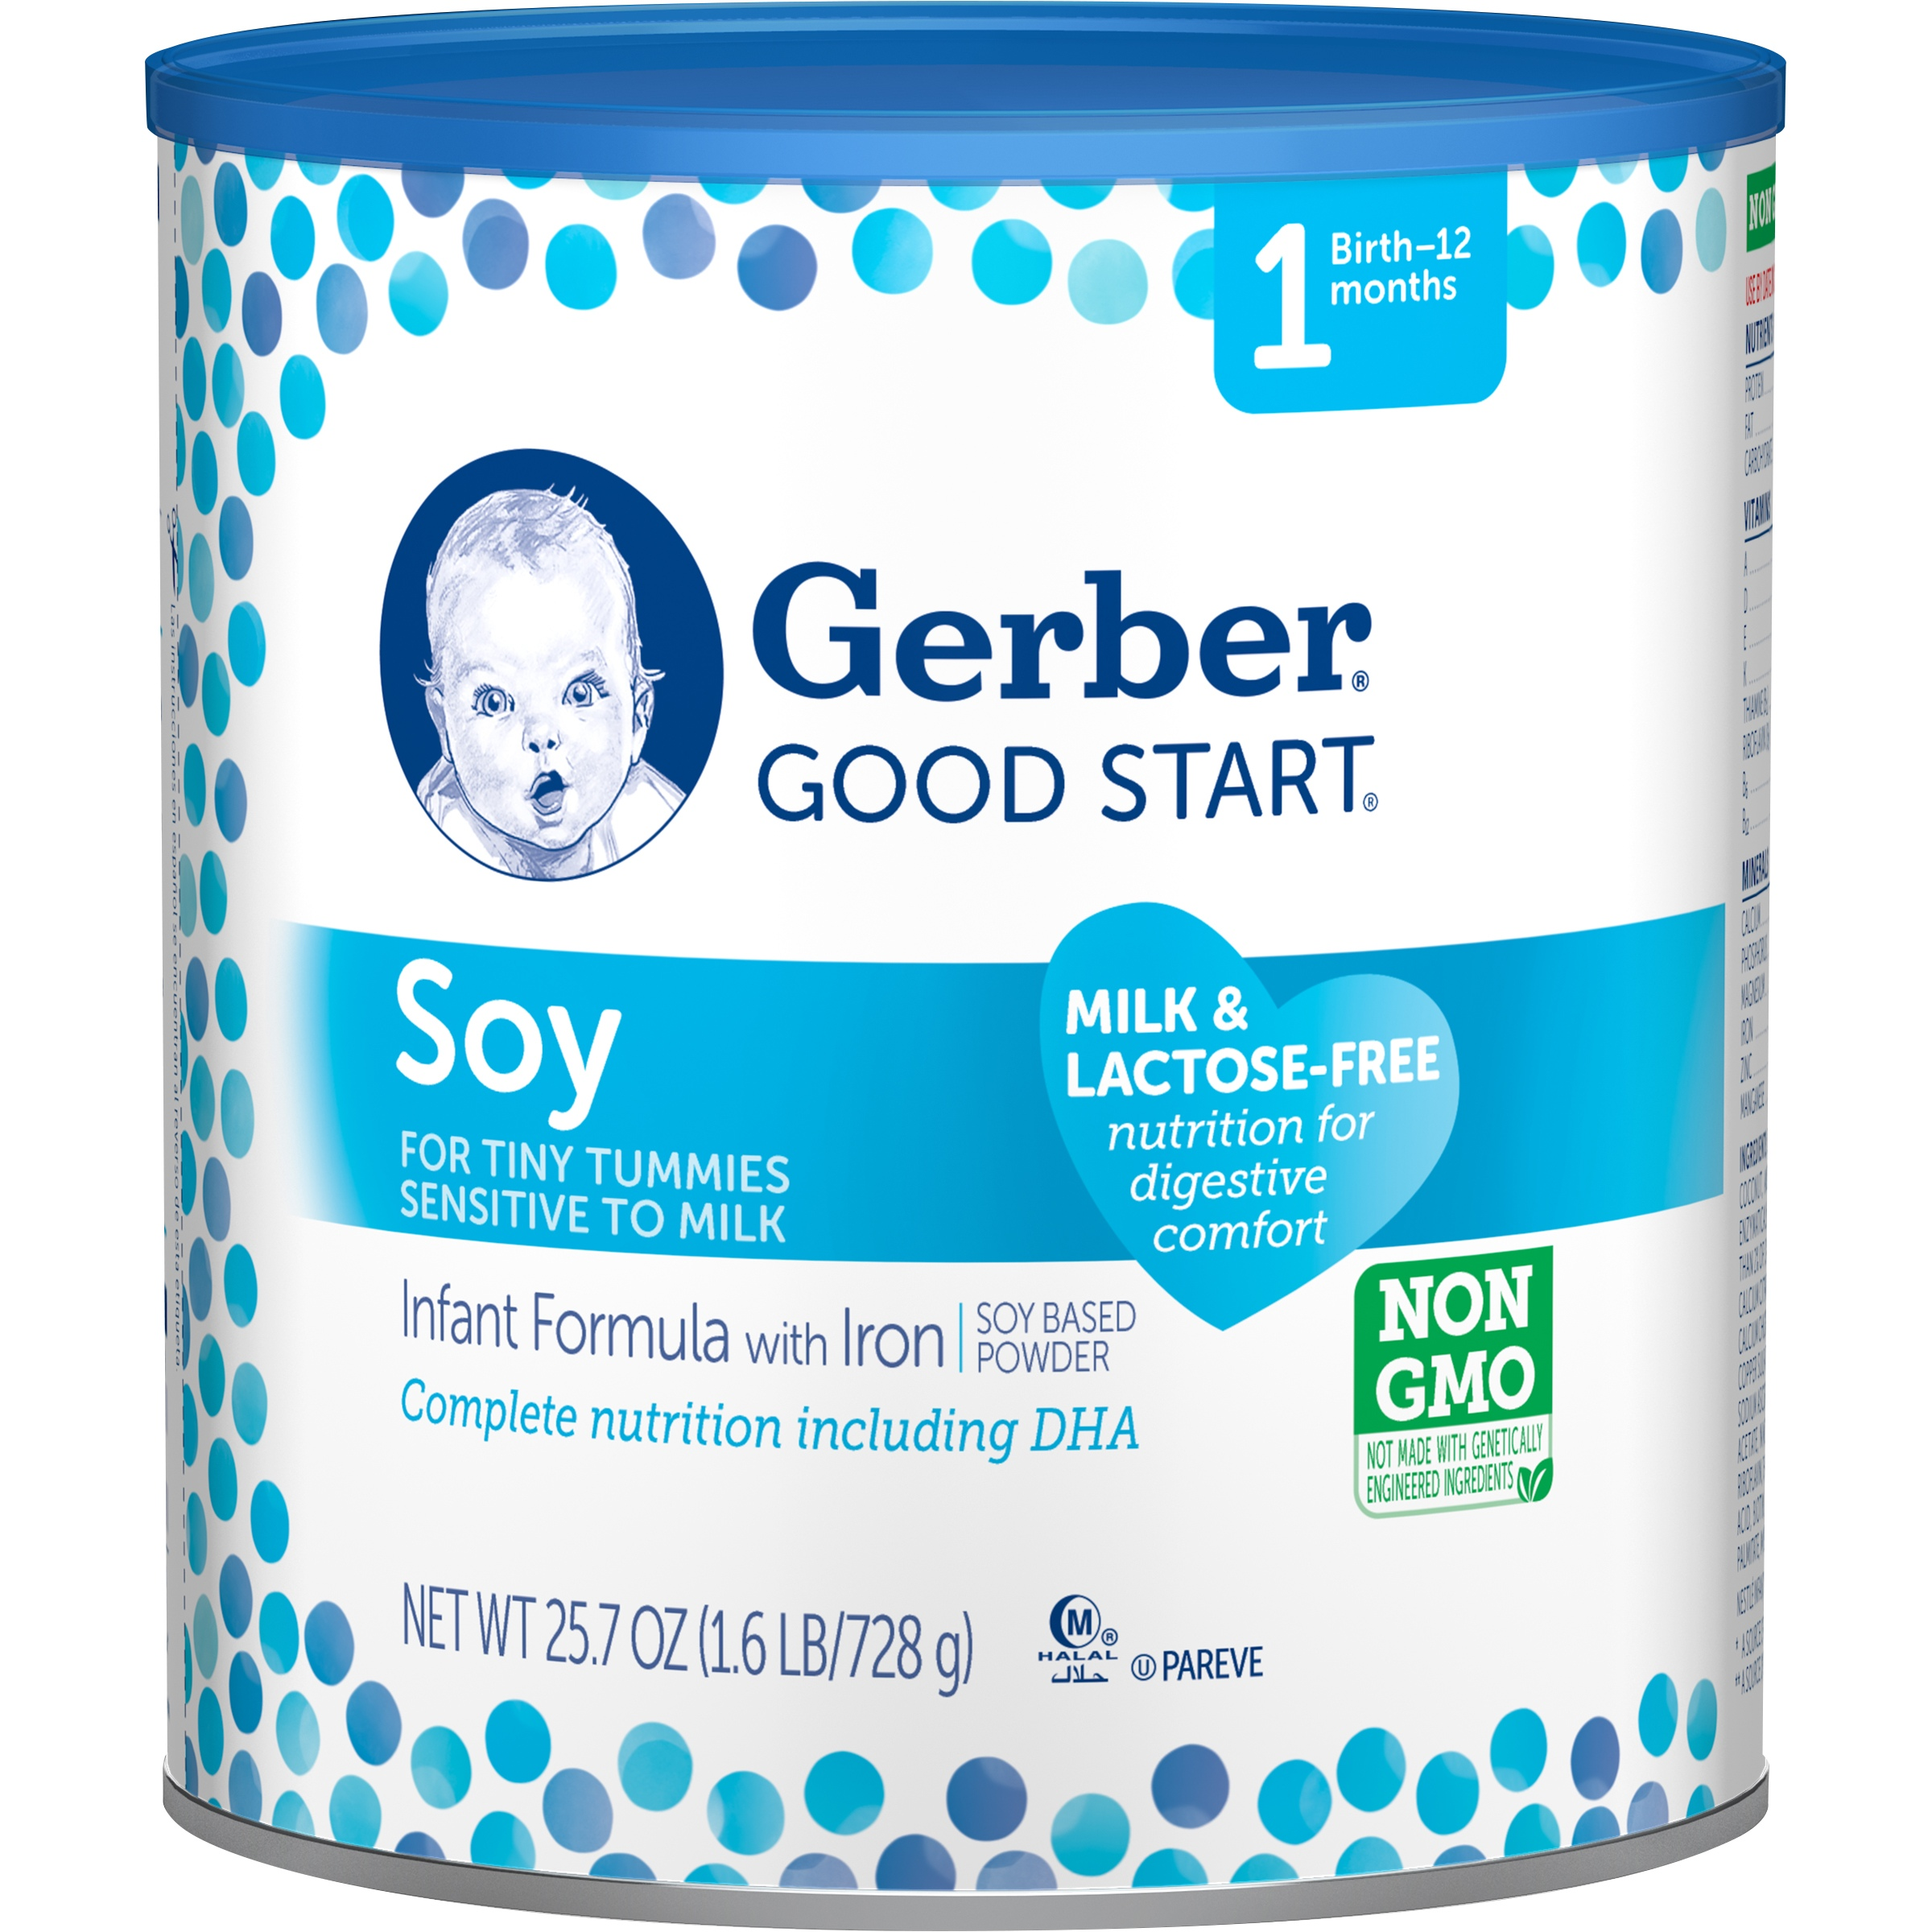 Gerber Good Start Soy Non-GMO Powder Infant Formula, Stage 1, 25.7 oz